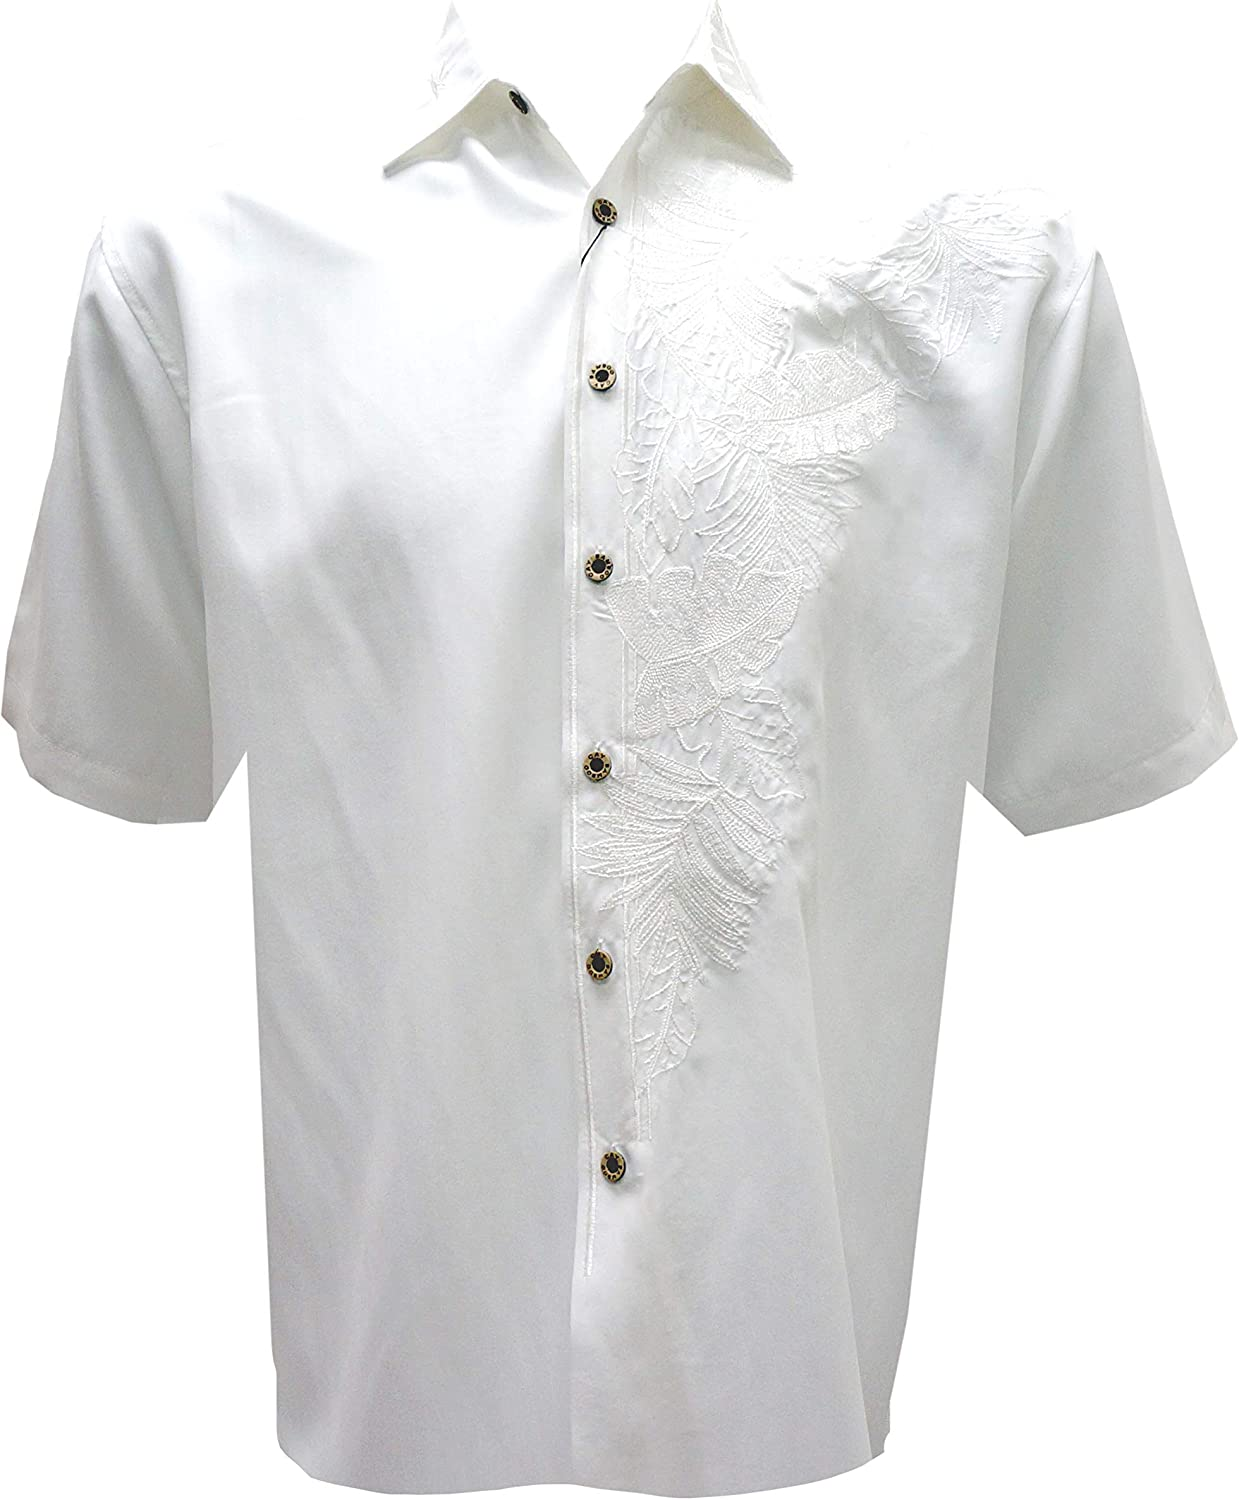 Bamboo Cay Mens Short Sleeve Island Leaf Nation Casual Embroidered Woven Shirt